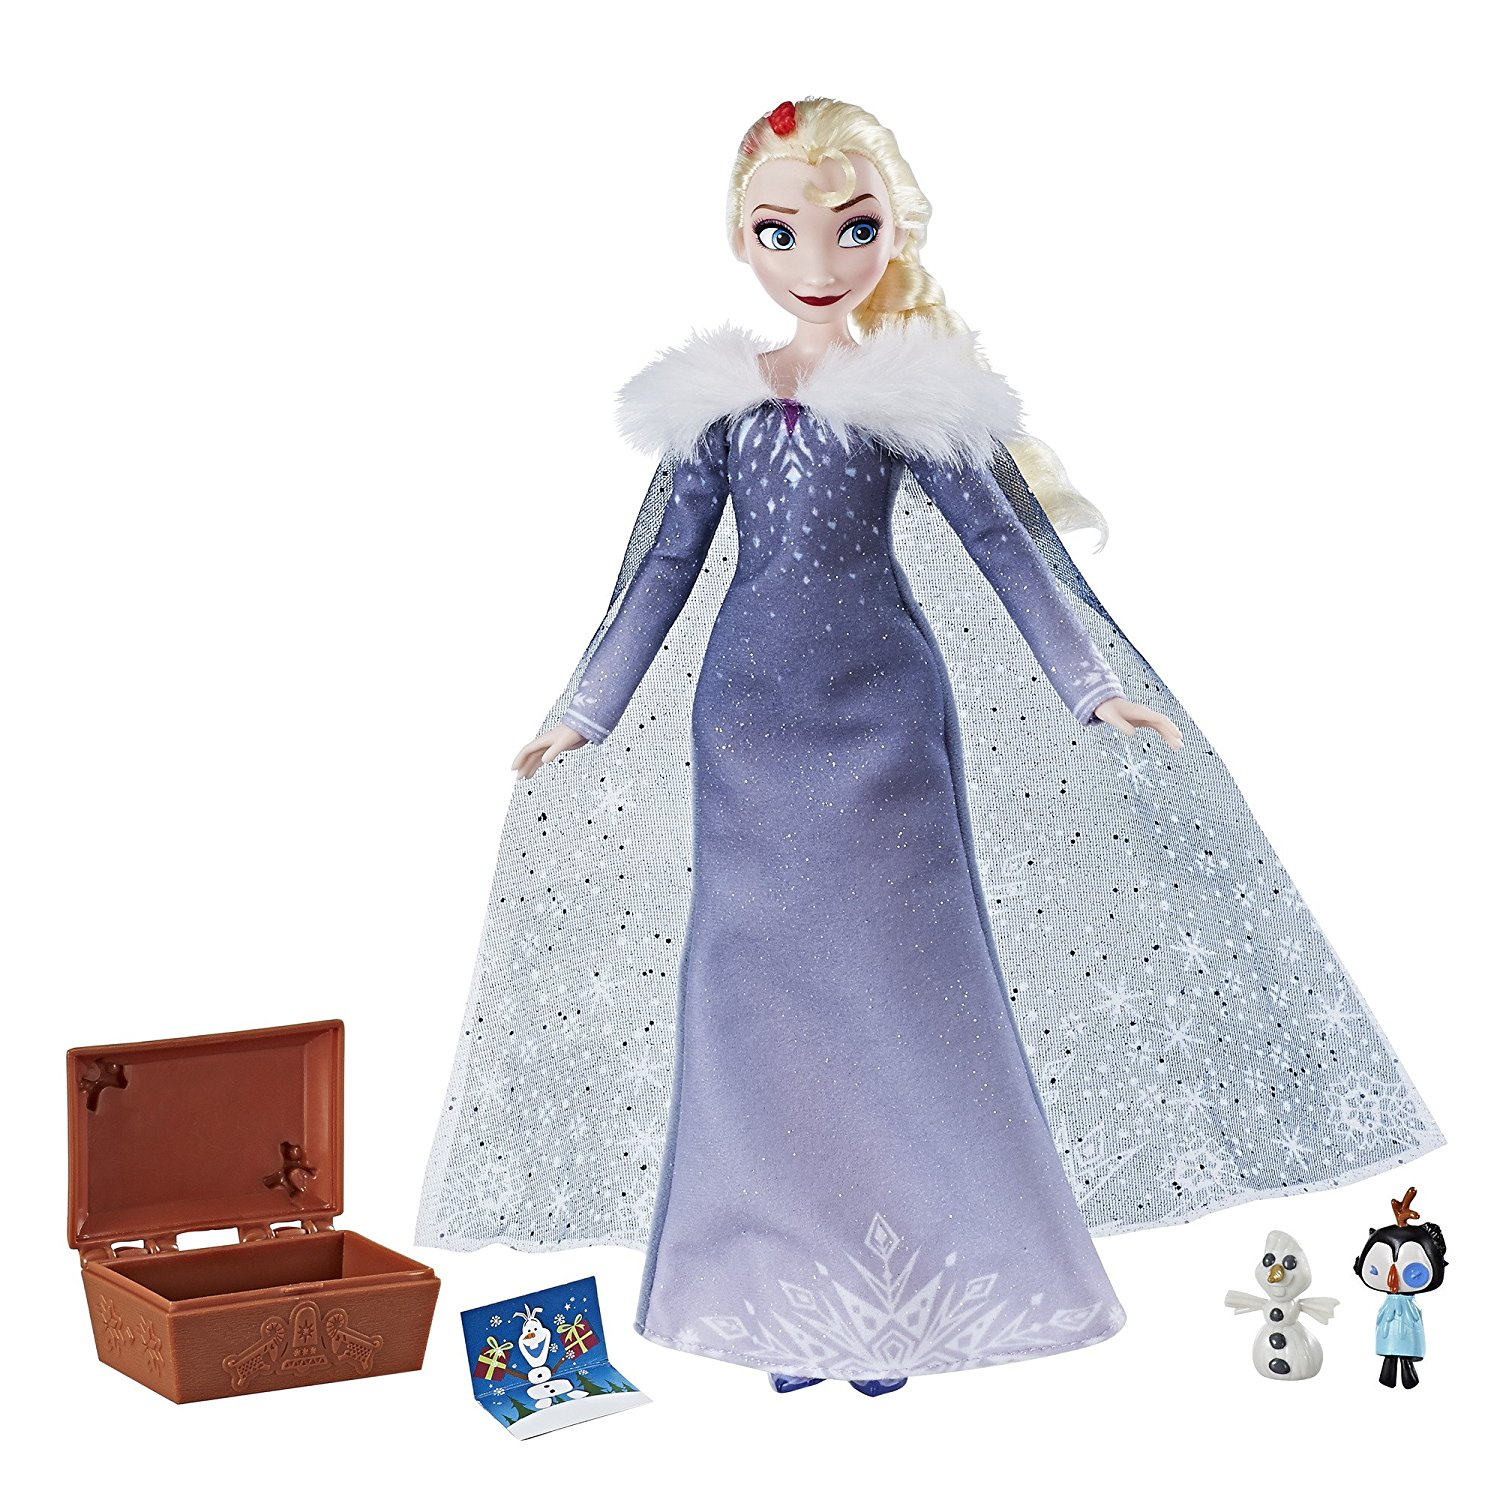 Disney Frozen Elsa's Treasured Traditions by Hasbro